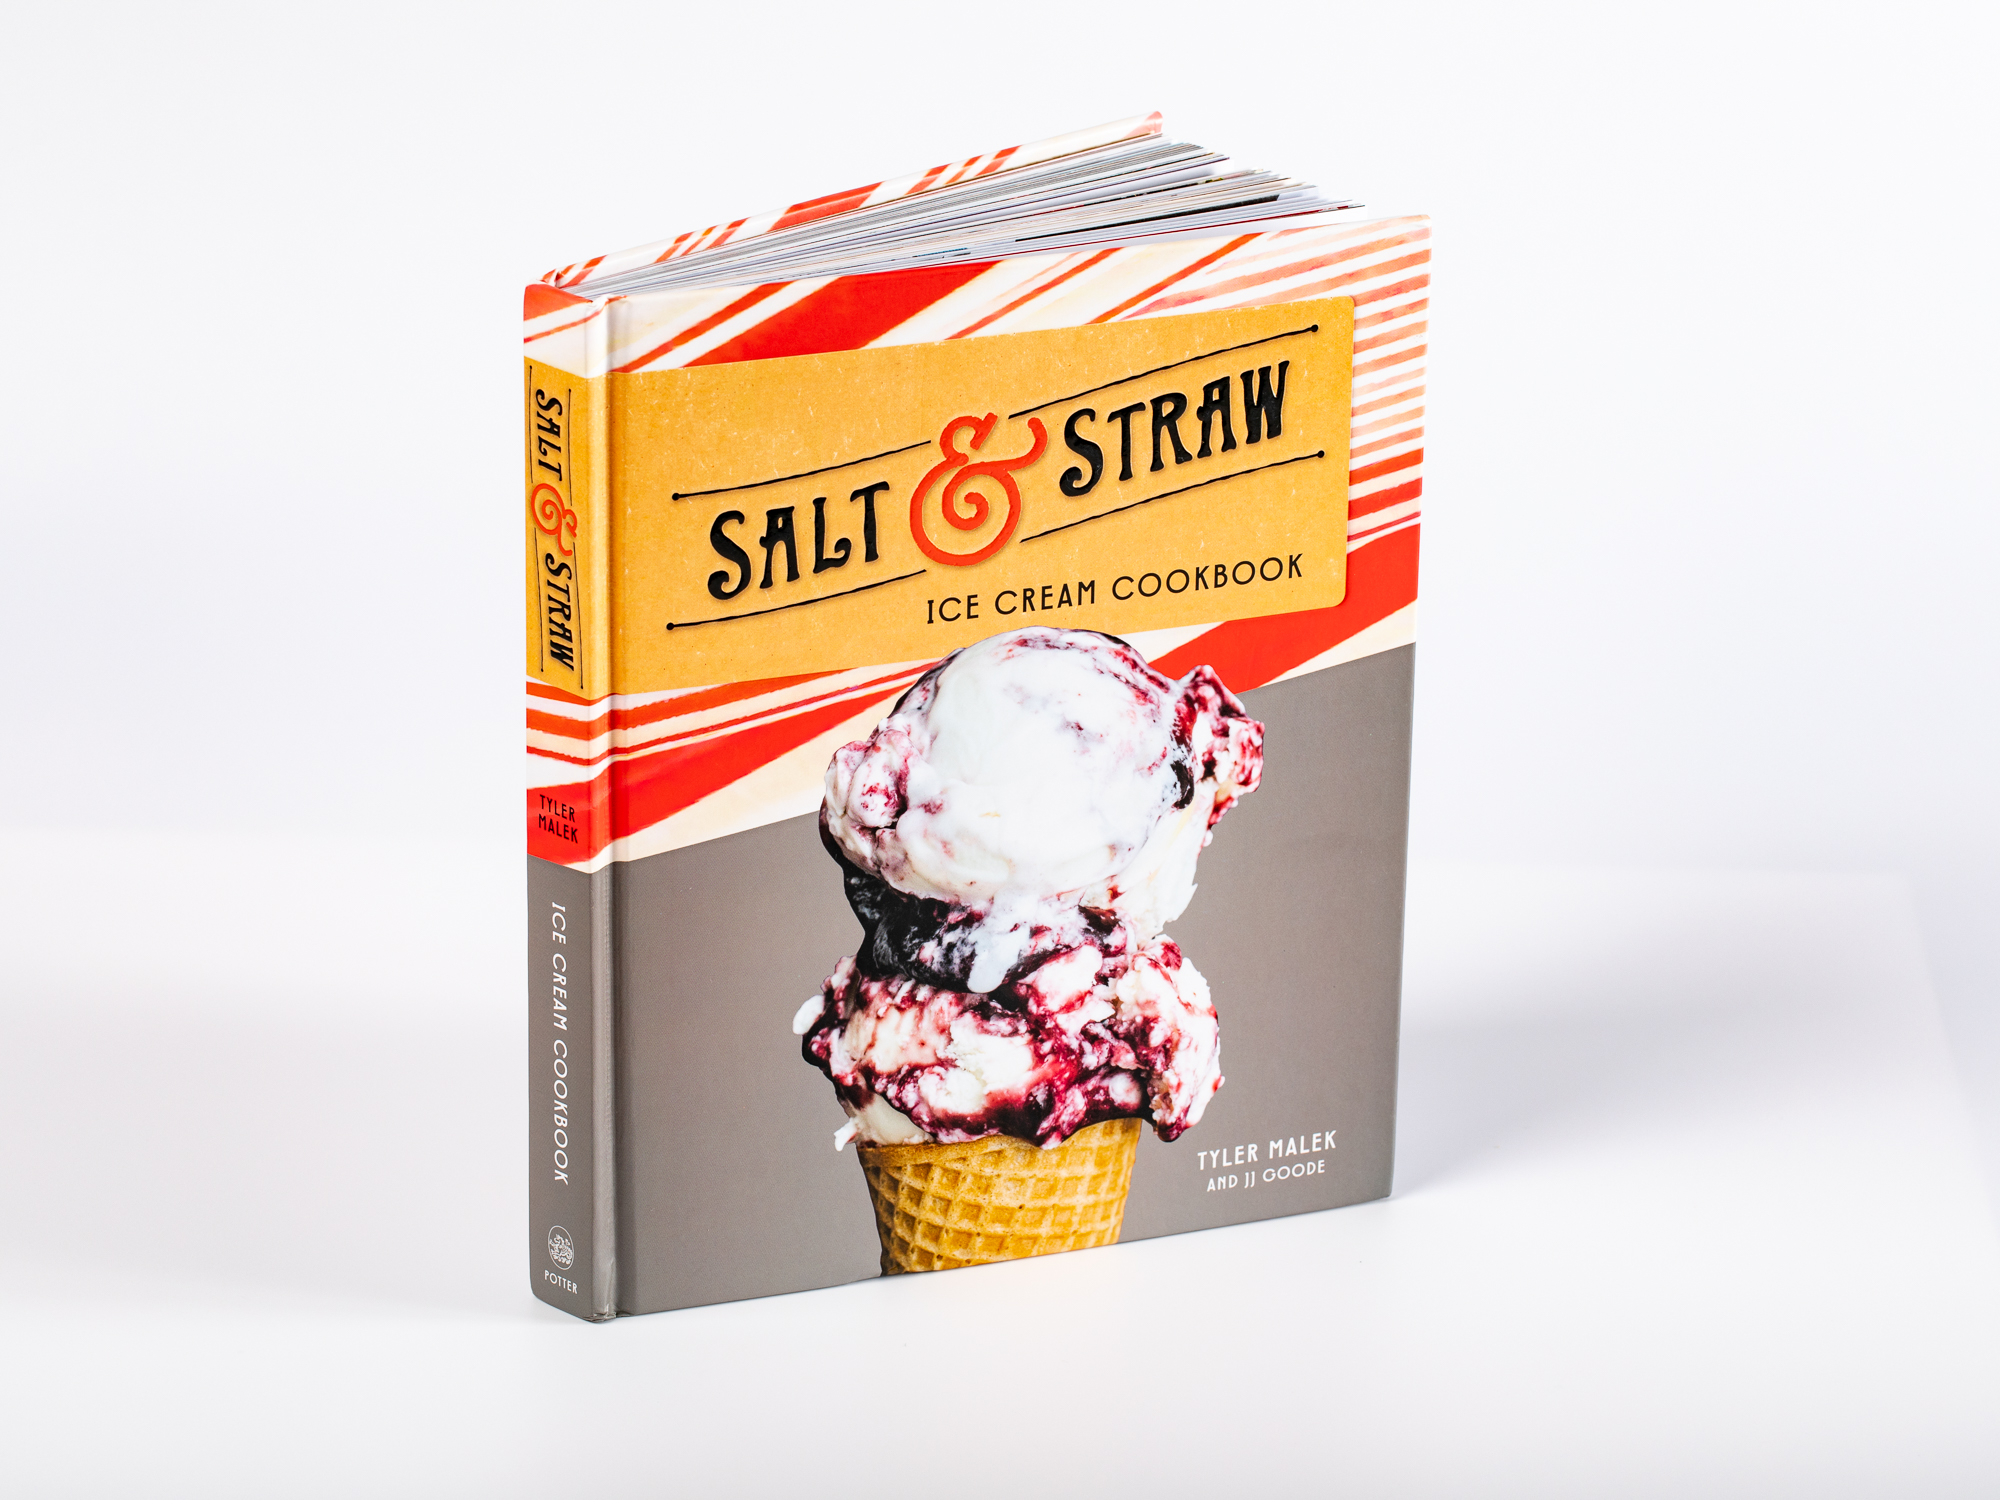 Get the Scoop on Salt & Straw's New Cookbook